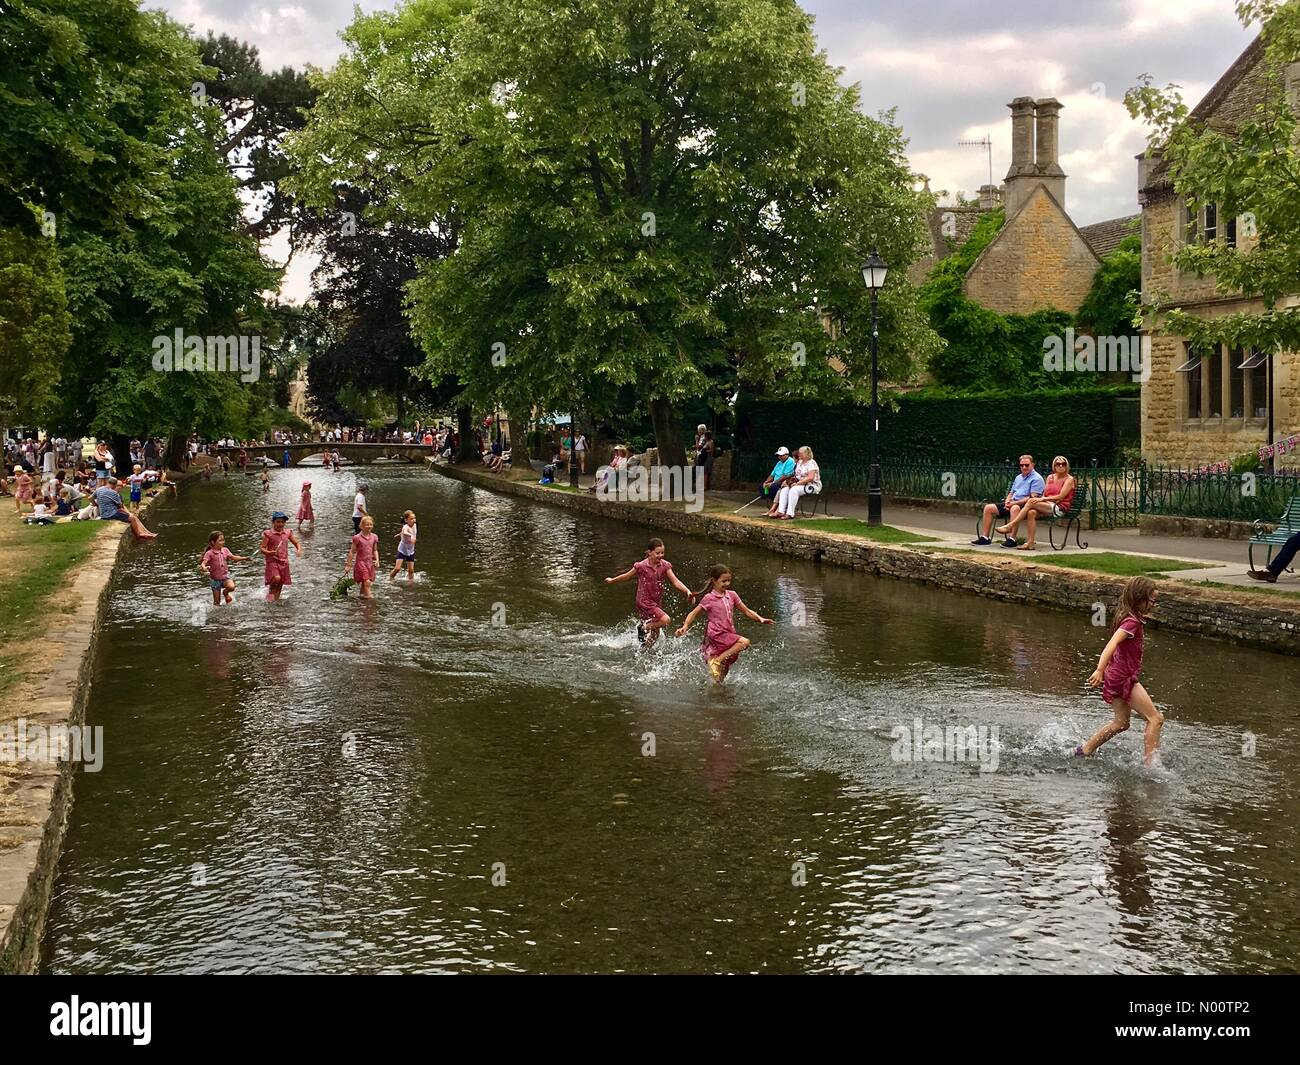 20-july-2018-bourton-on-the-water-englan